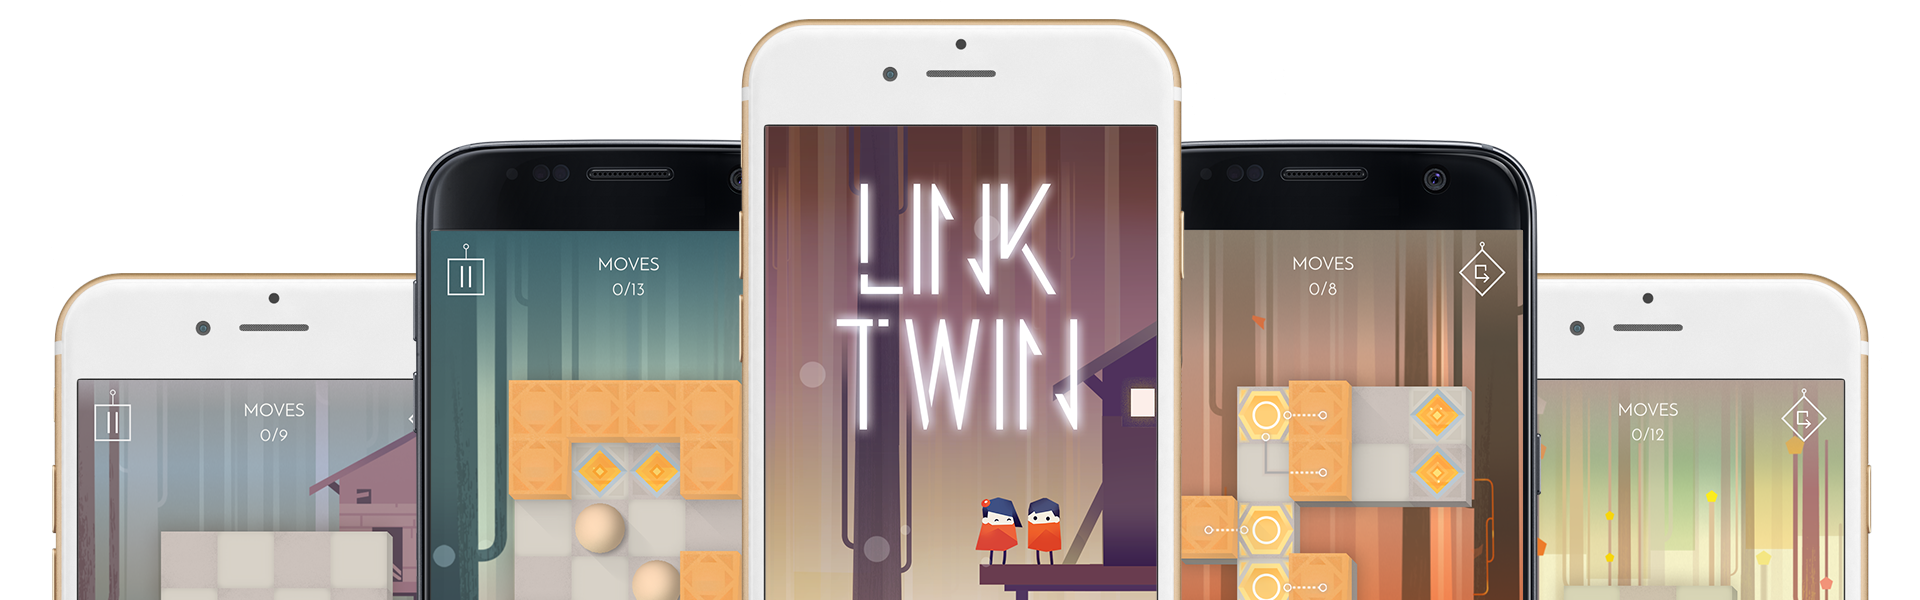 Link Twin works on multiple terminals